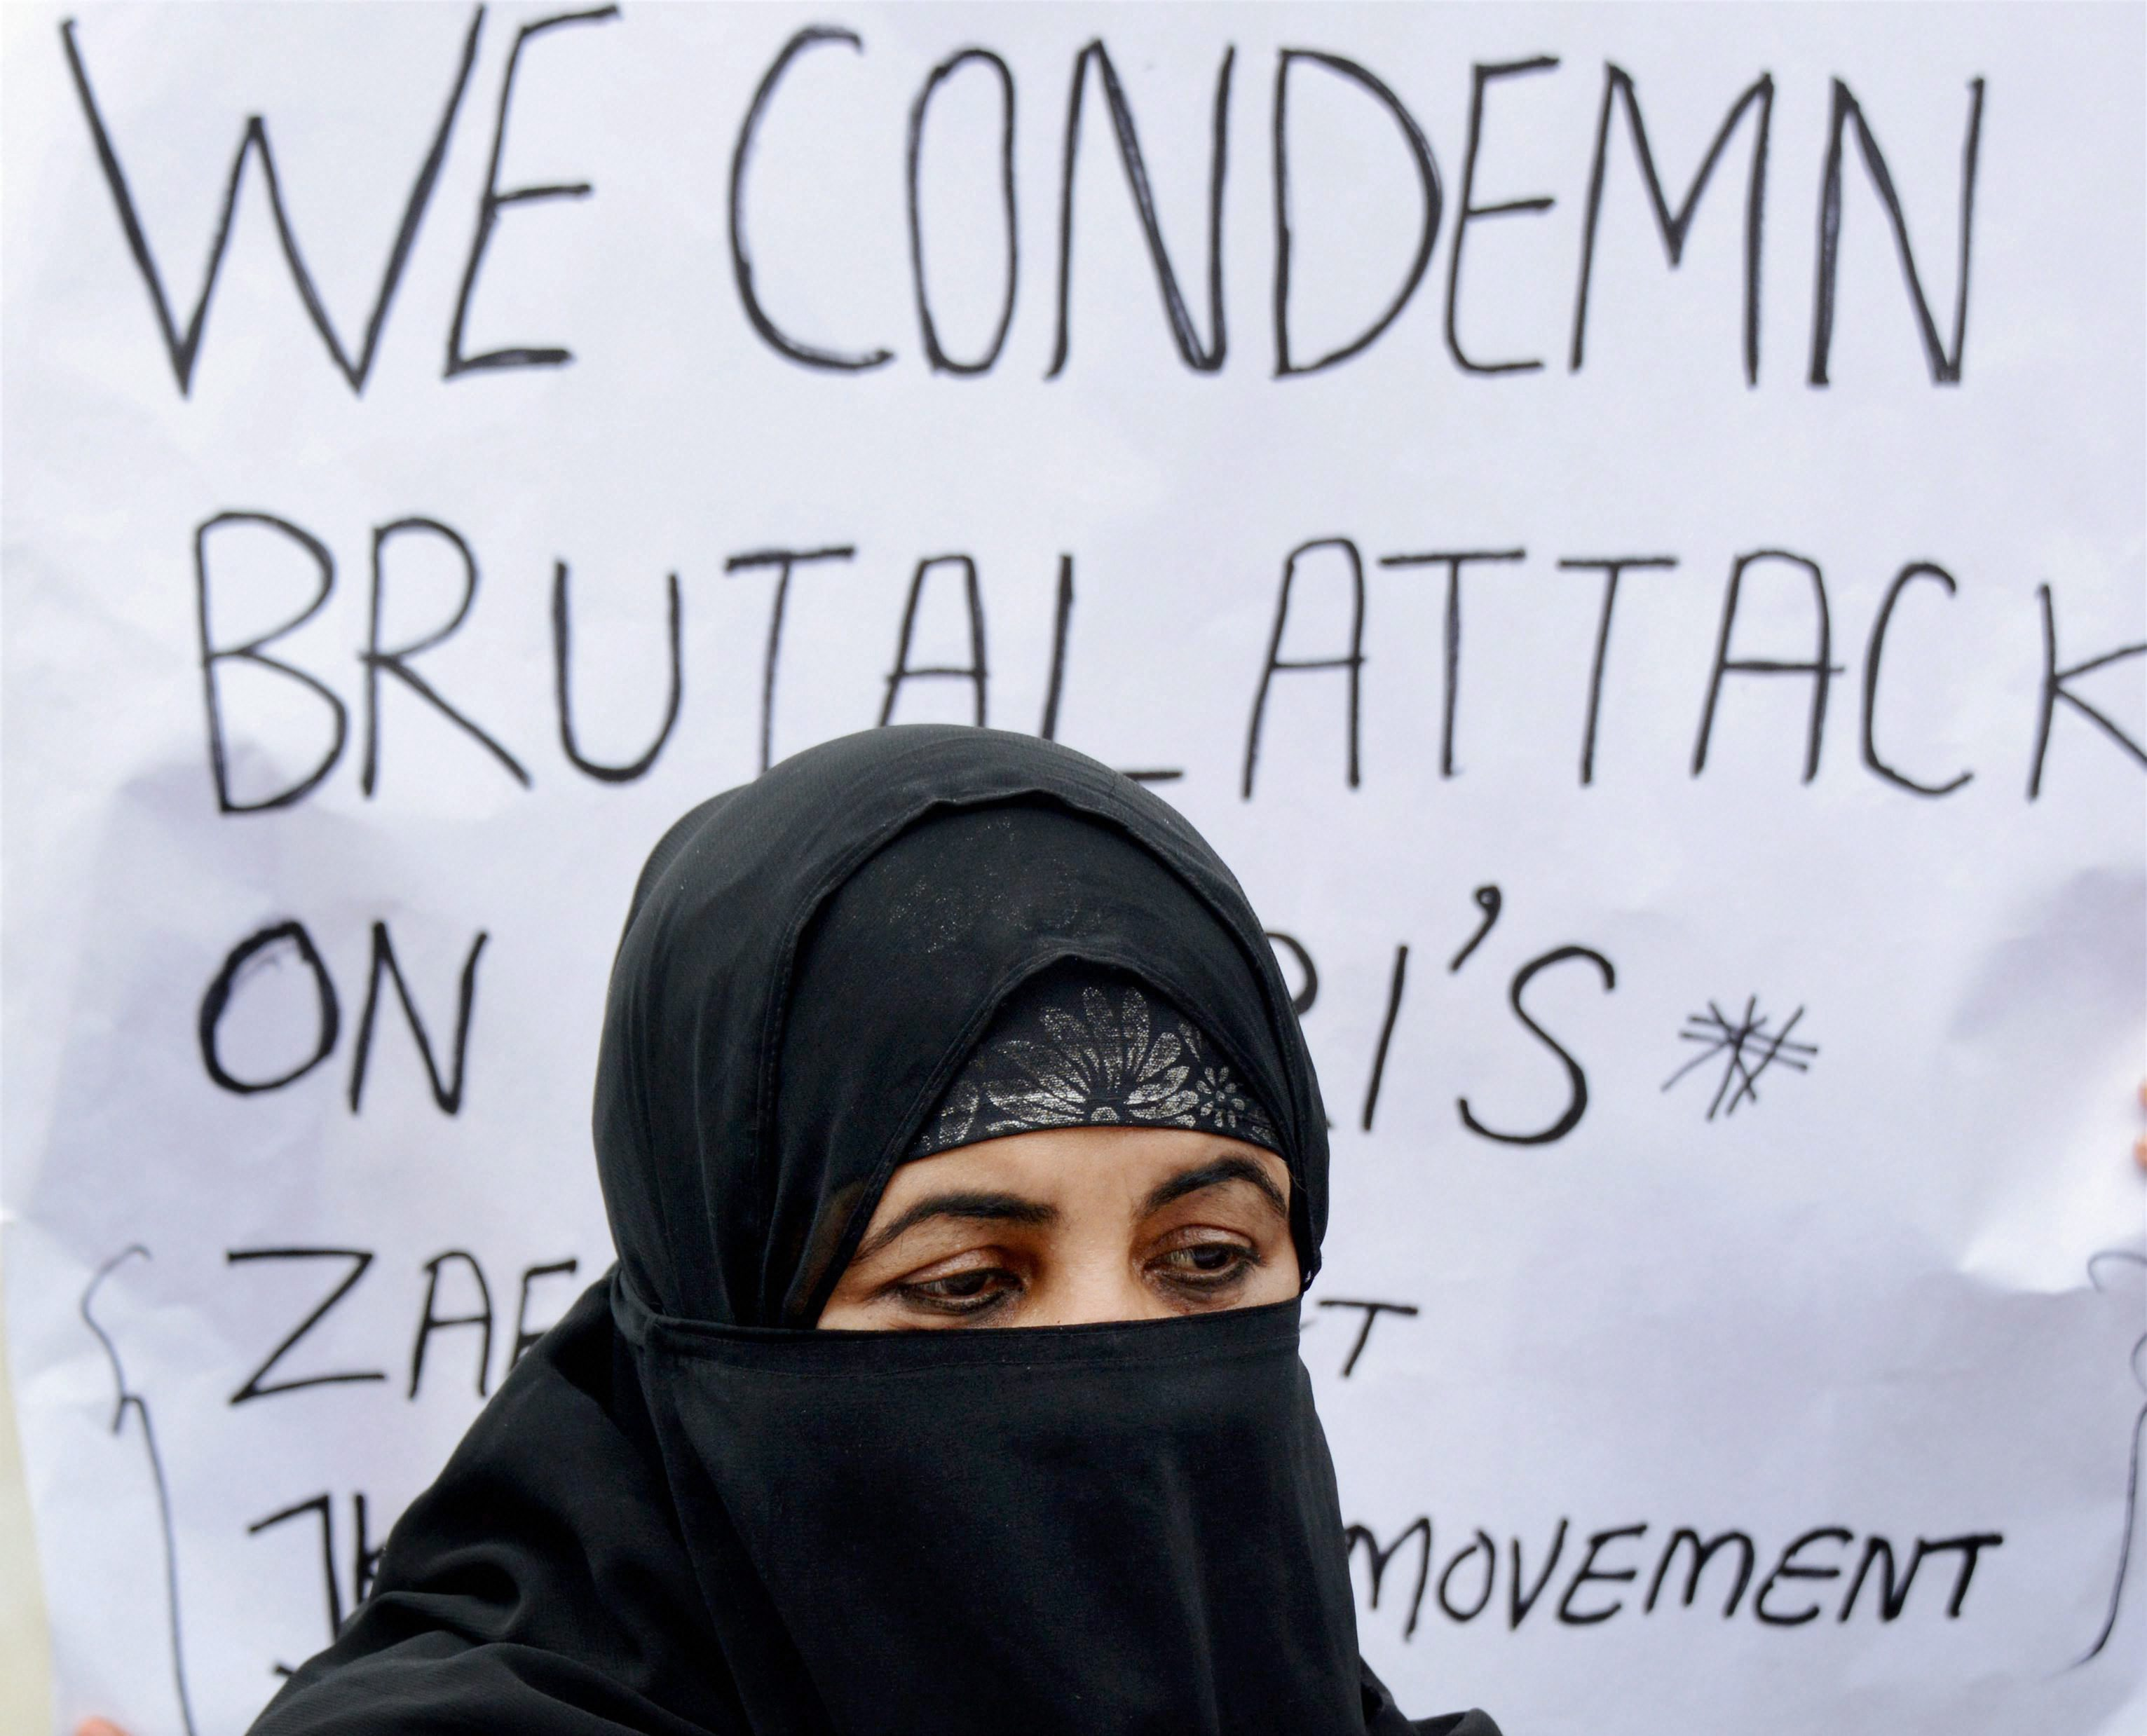 A woman takes part in a protest in Srinagar, Jammu and Kashmir. (Pic: PTI)